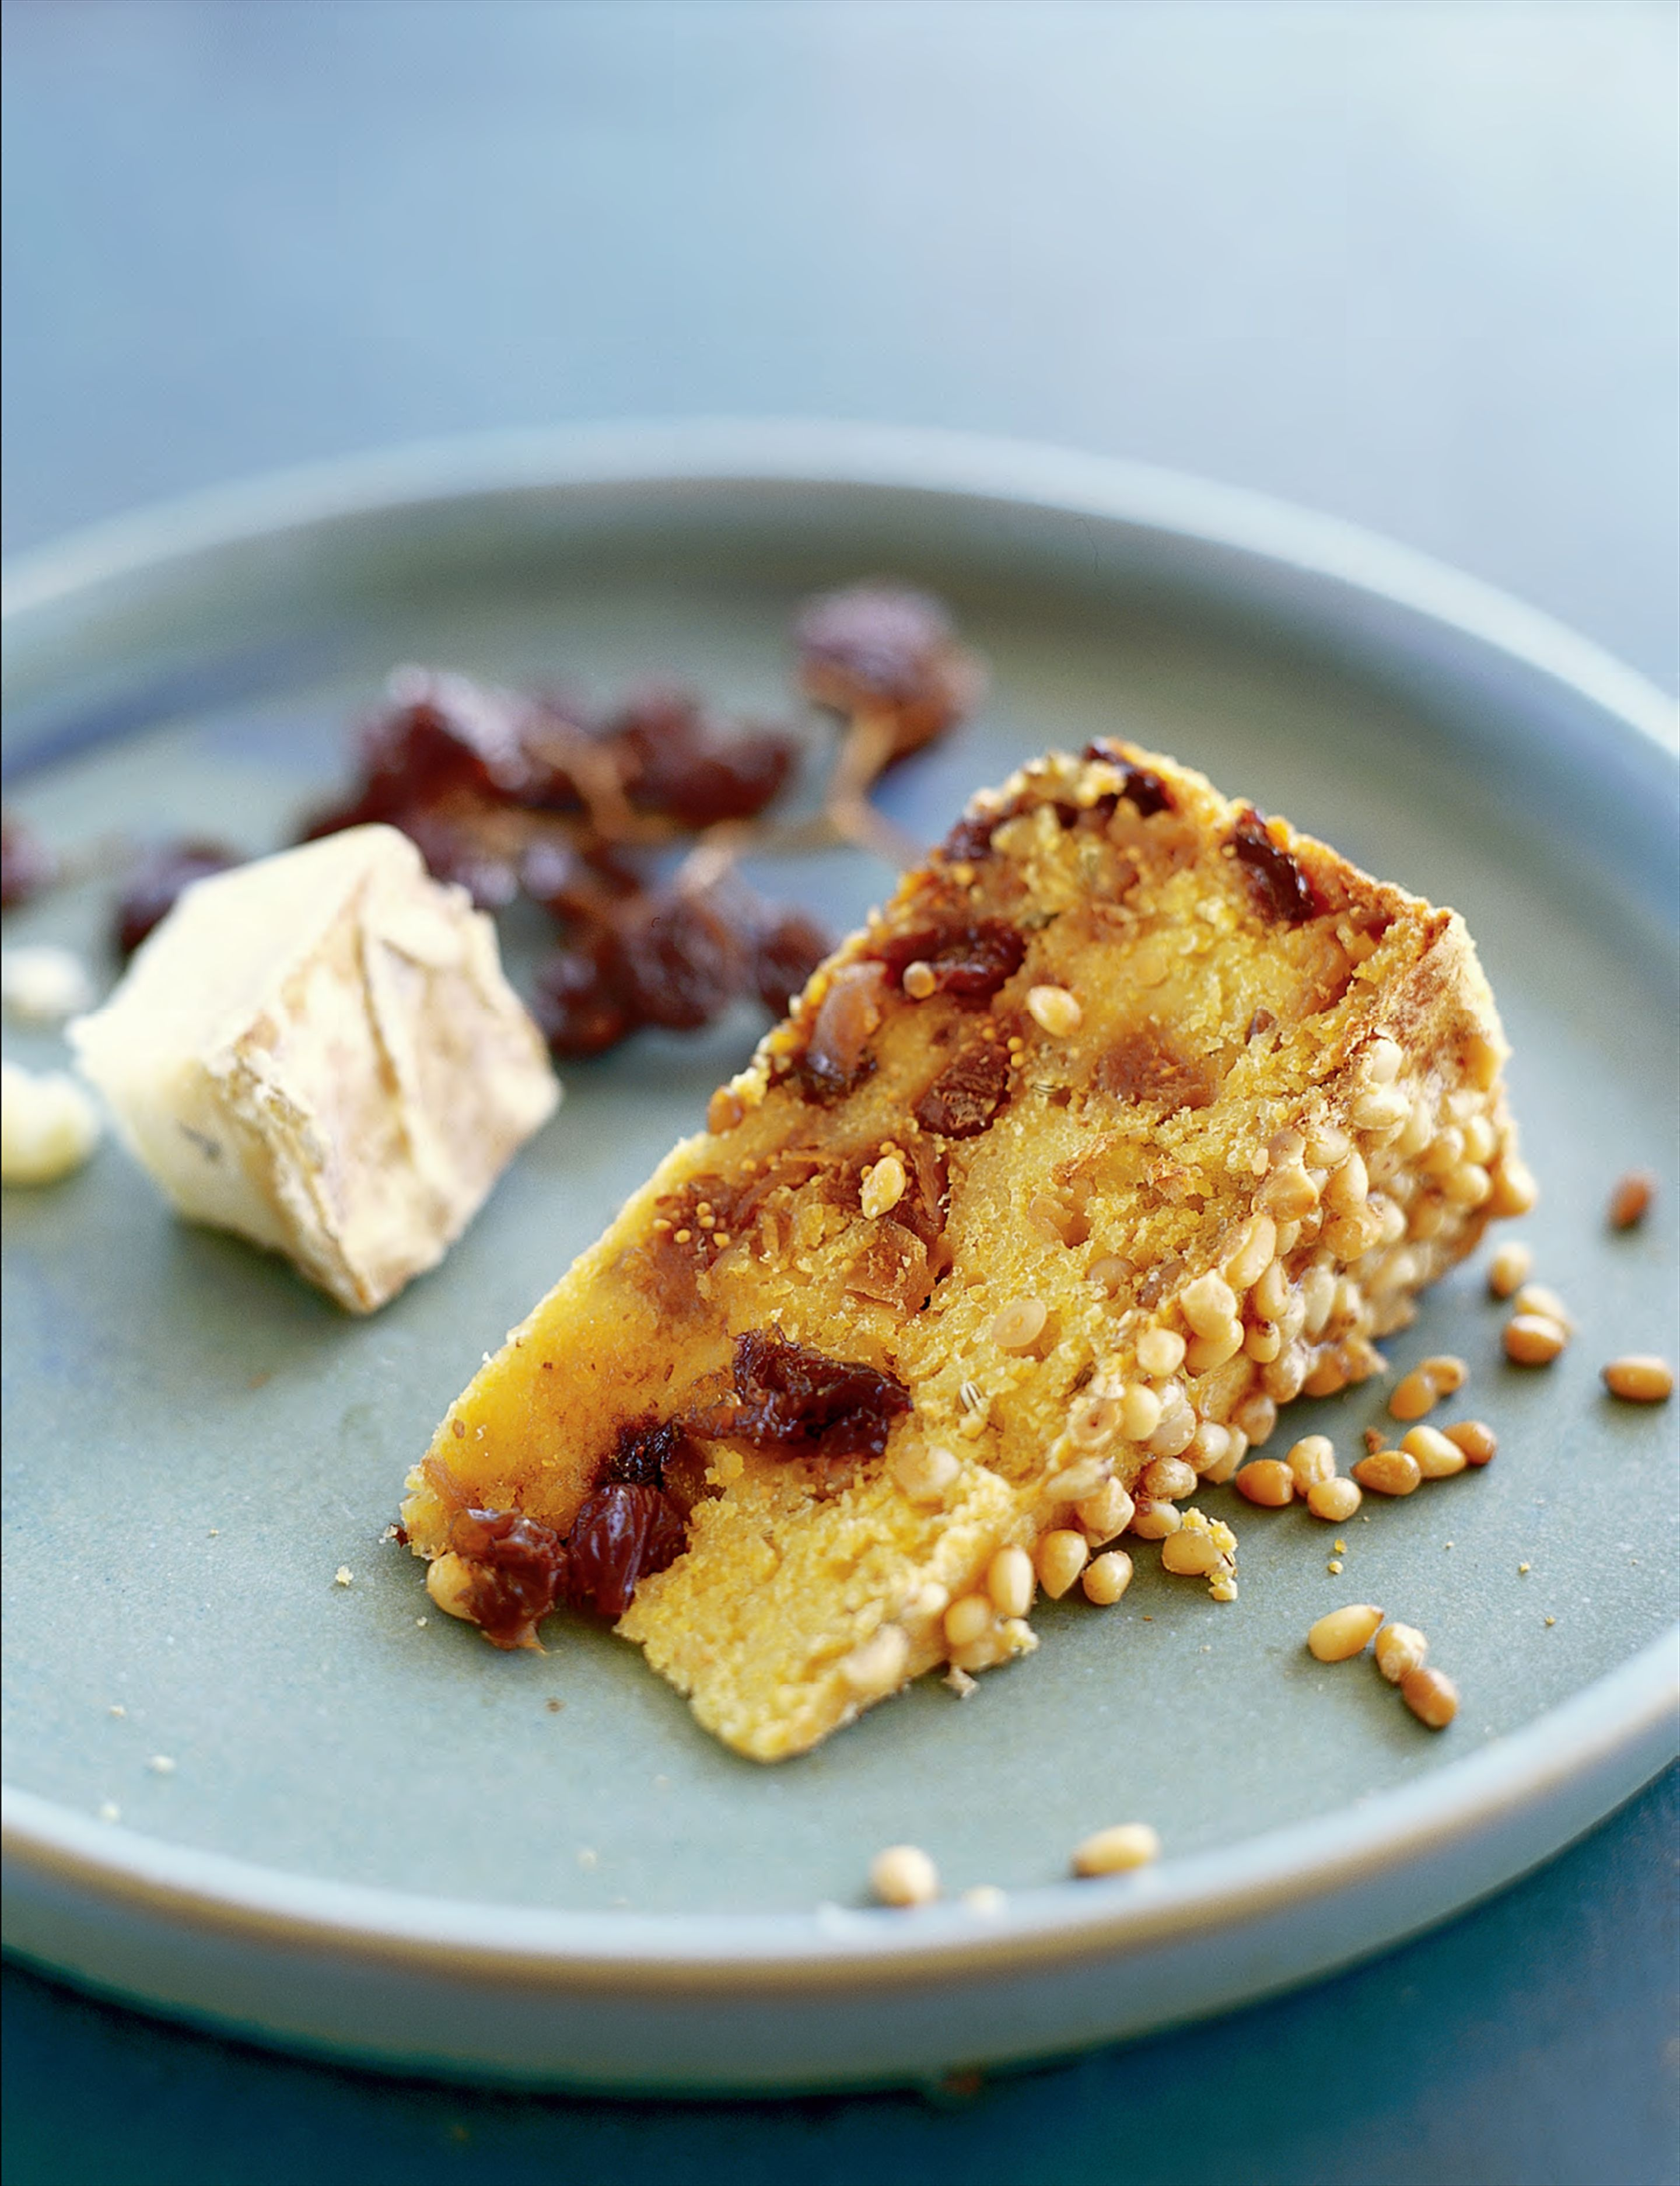 Polenta cake with pine nuts and dried fruit